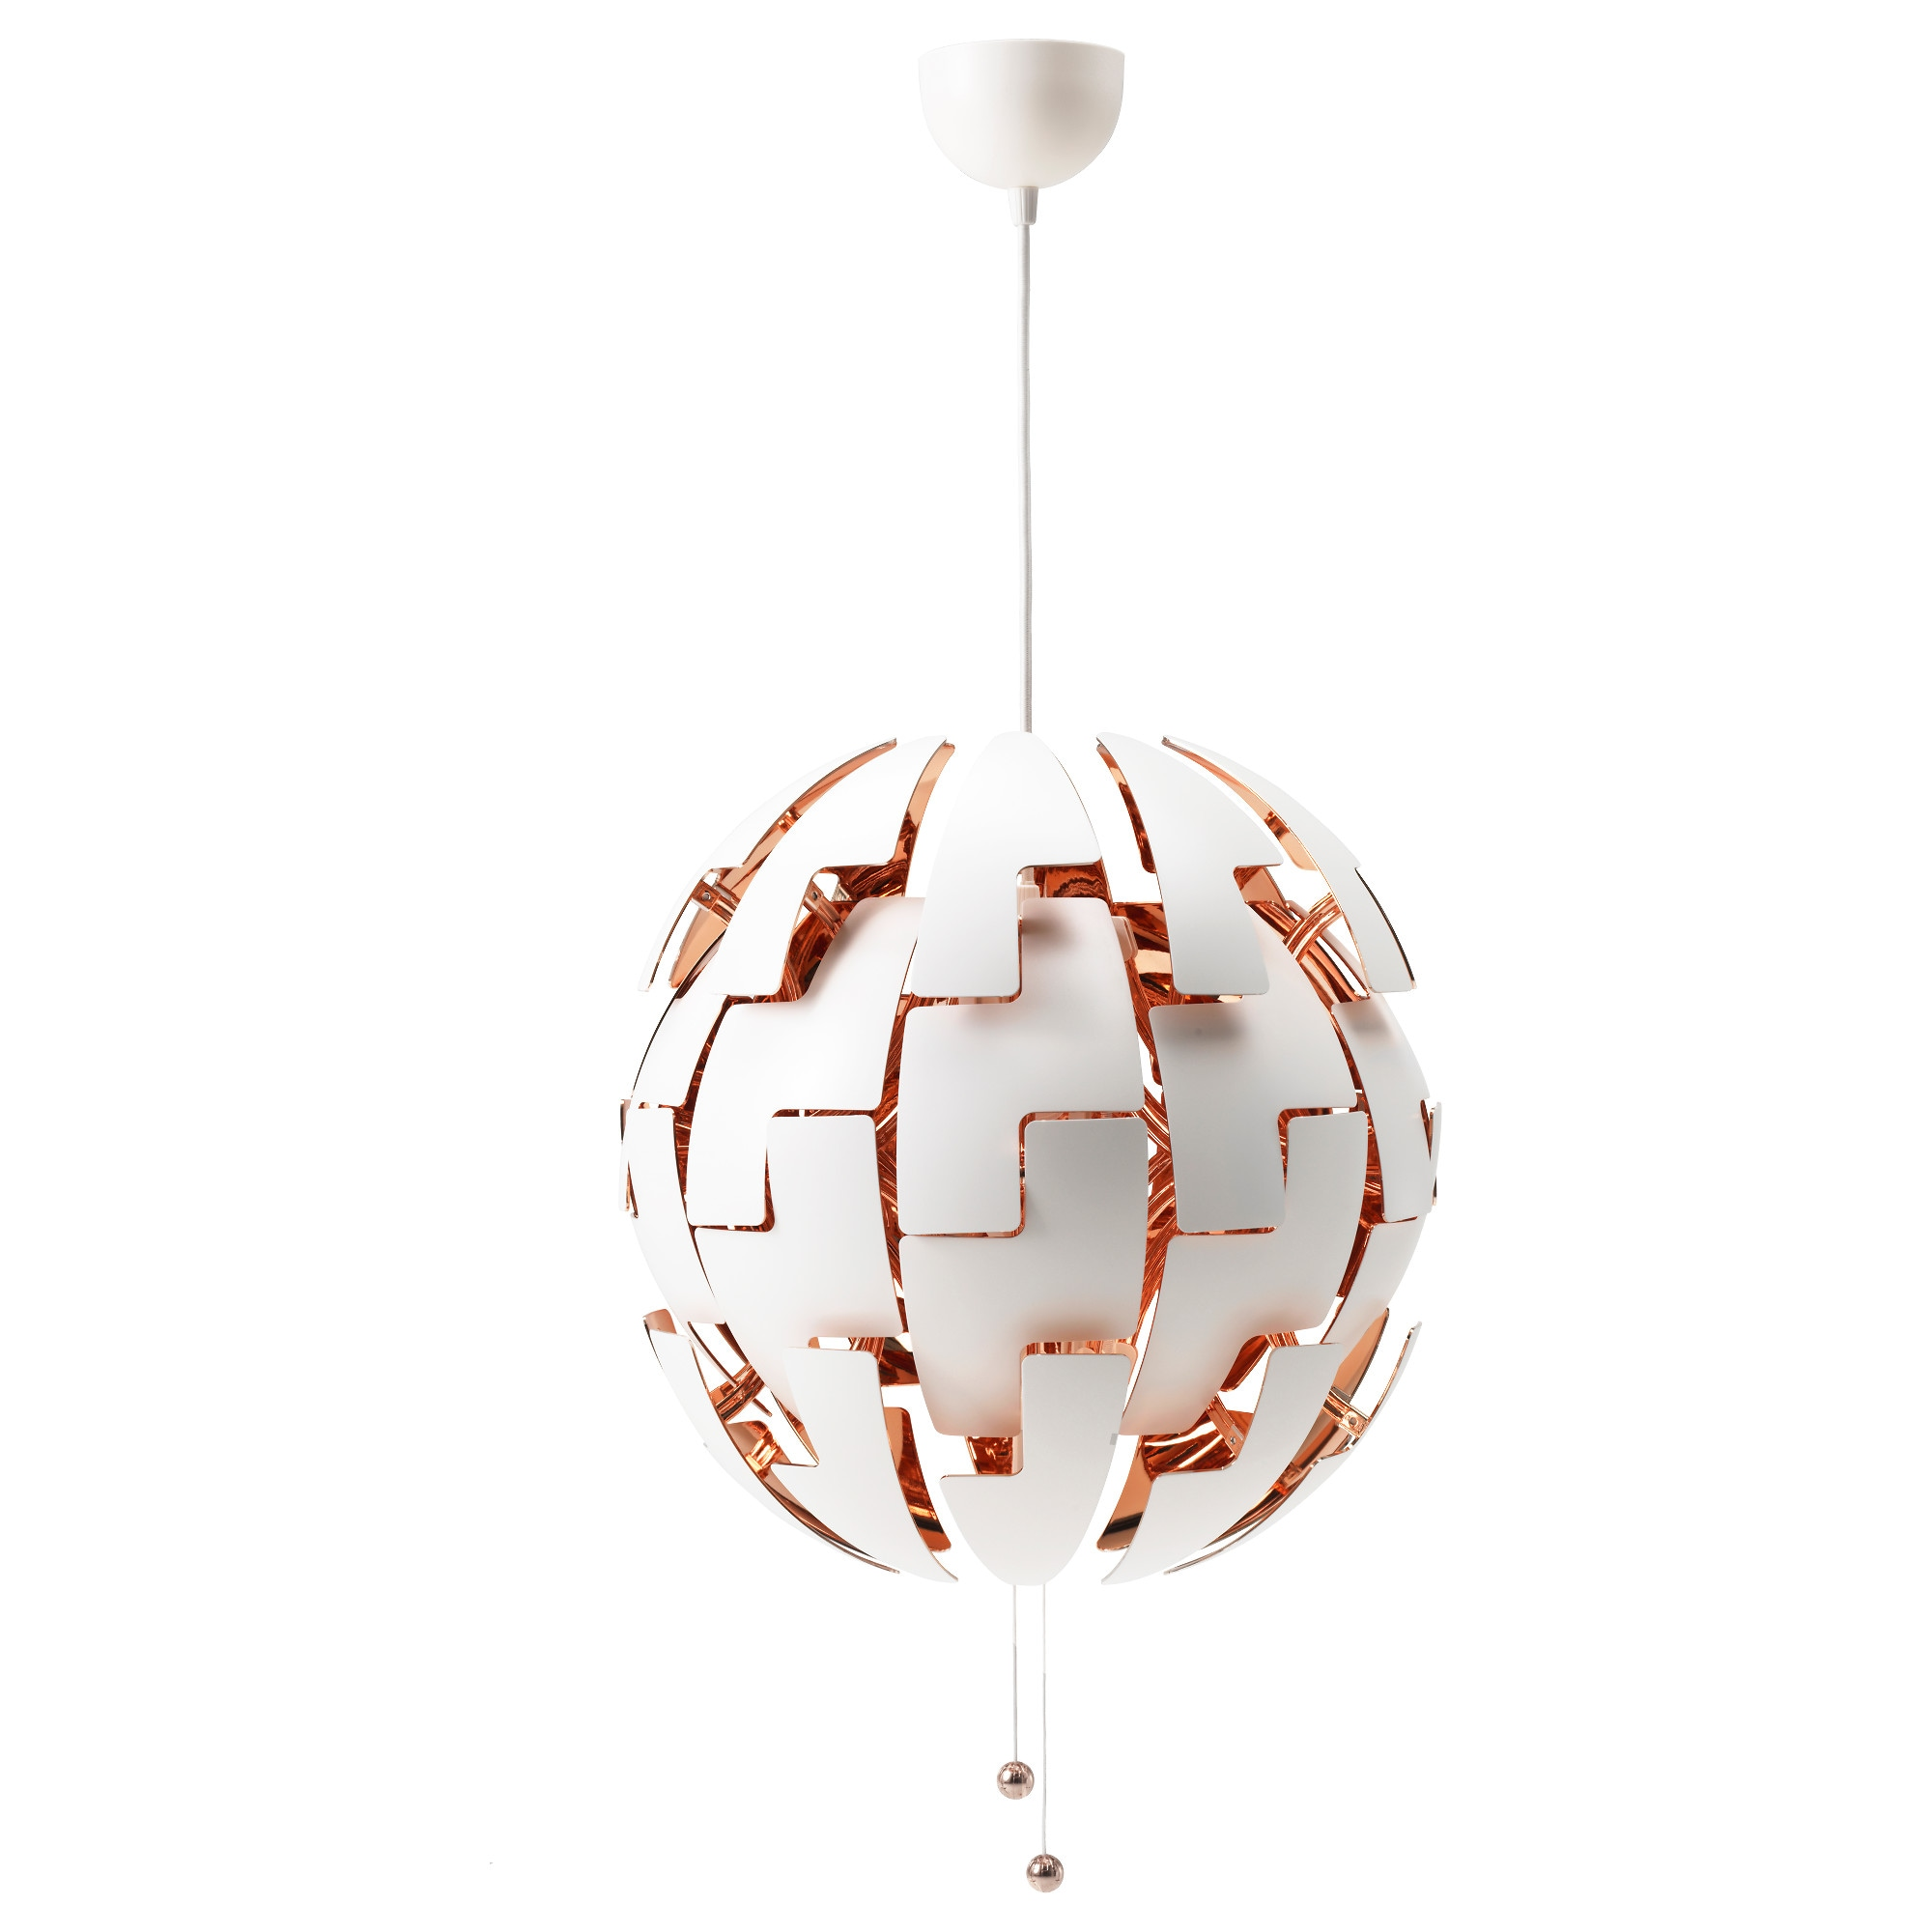 image ikea light fixtures ceiling. Inter IKEA Systems B.V. 1999 - 2018 | Privacy Policy Responsible  Disclosure. Image Ikea Light Fixtures Ceiling C